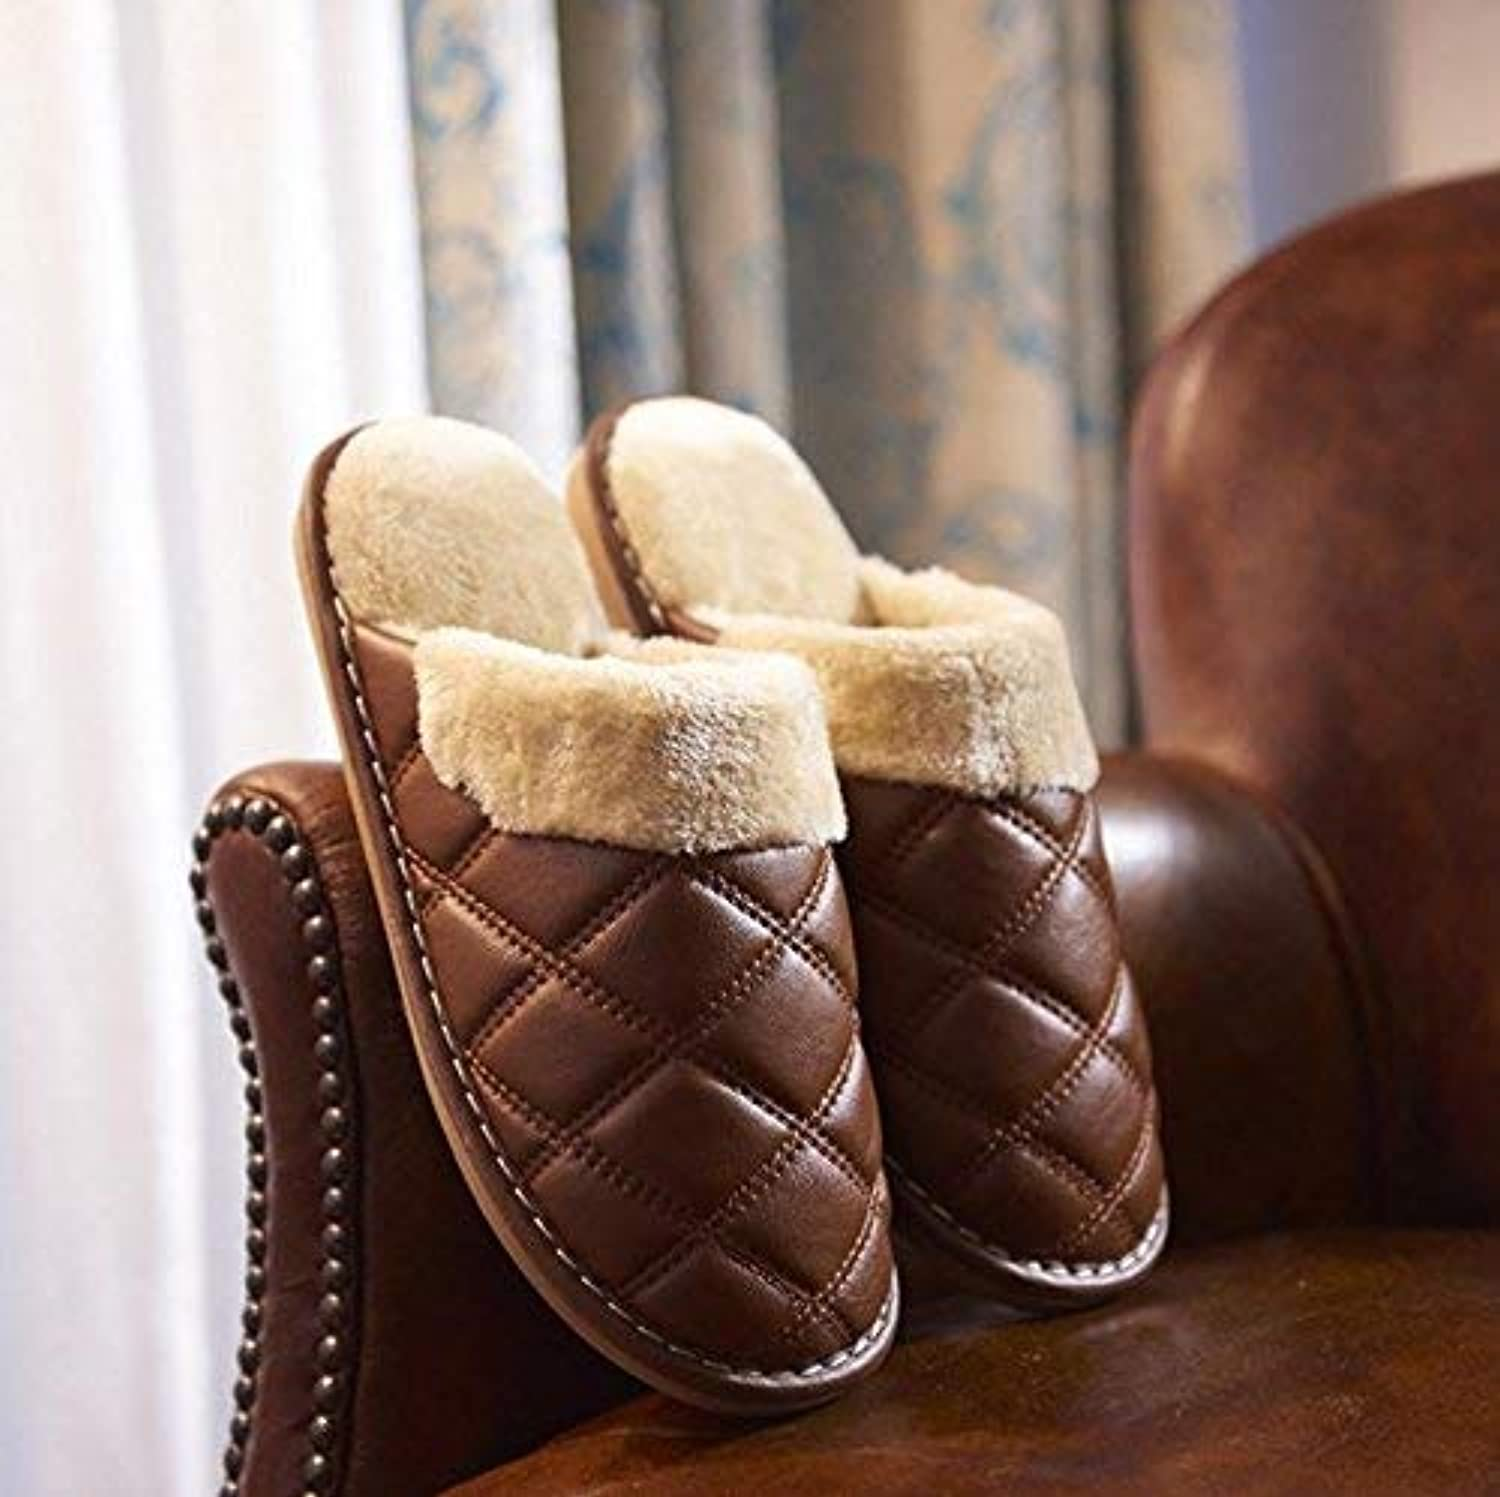 JaHGDU Household Indoor Home shoes Keep Warm Faux Leather Slippers Men Slippers Large Brown for Men Soild color